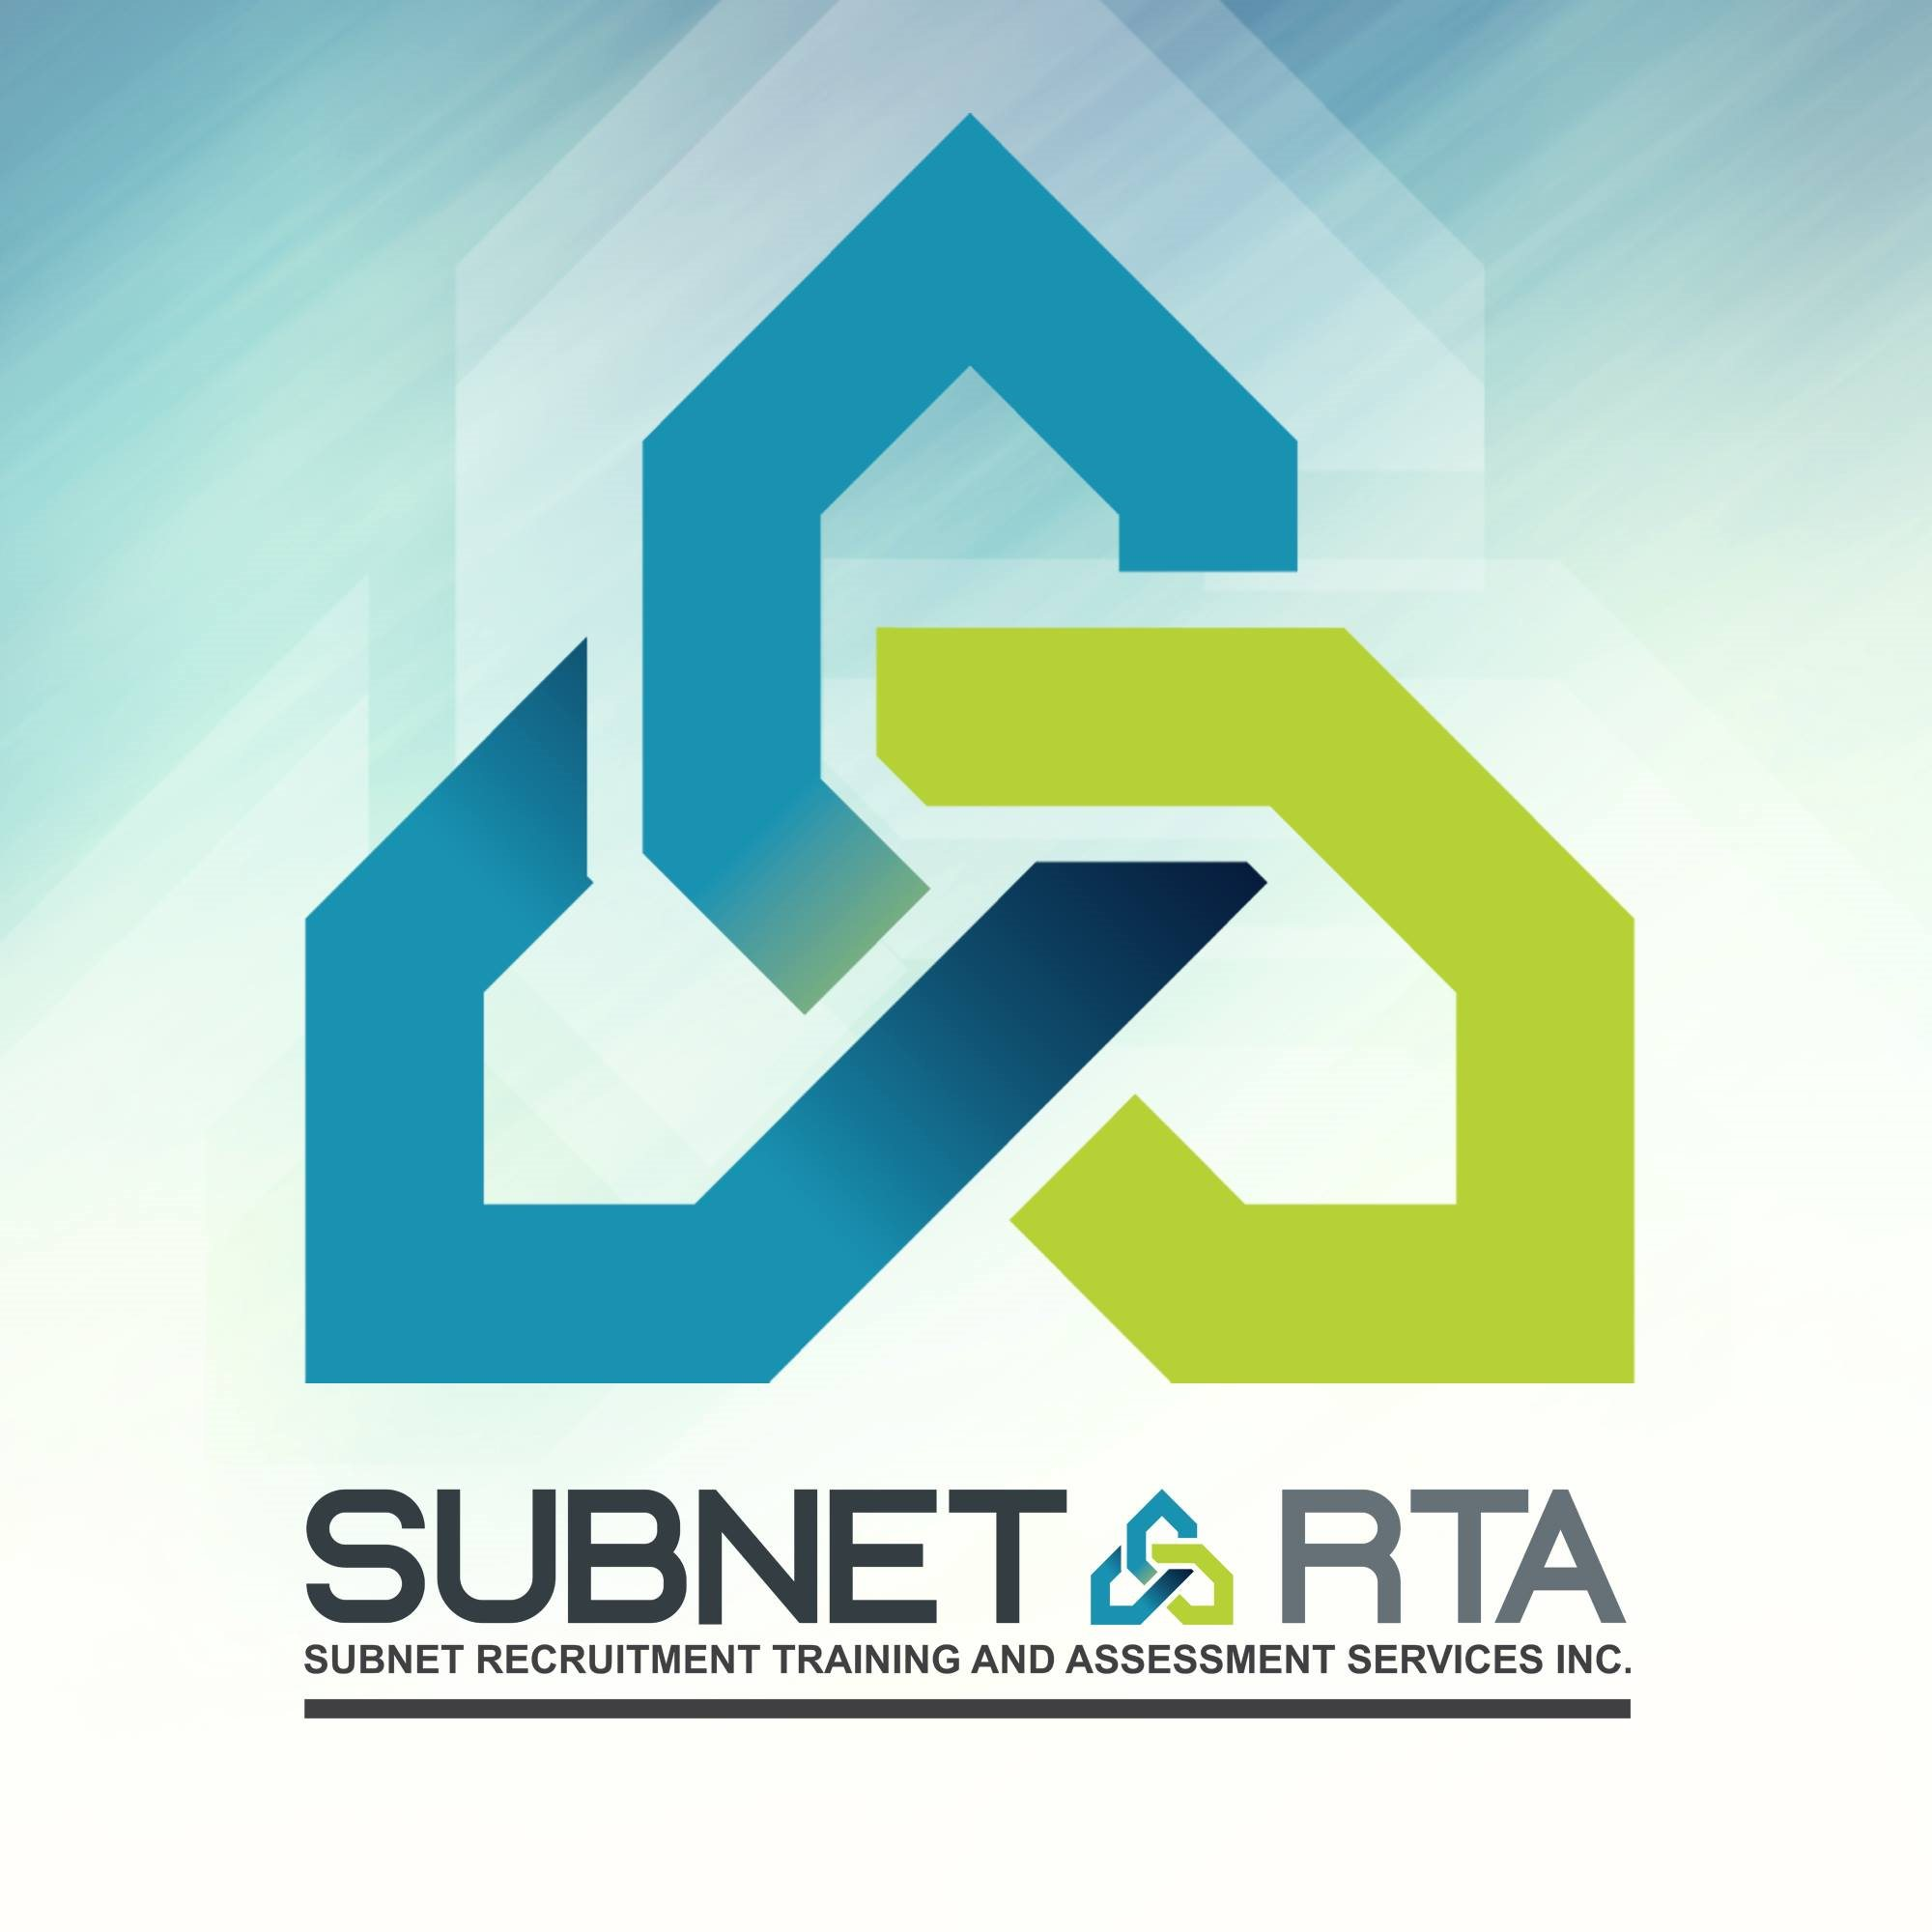 Subnet Group of Companies